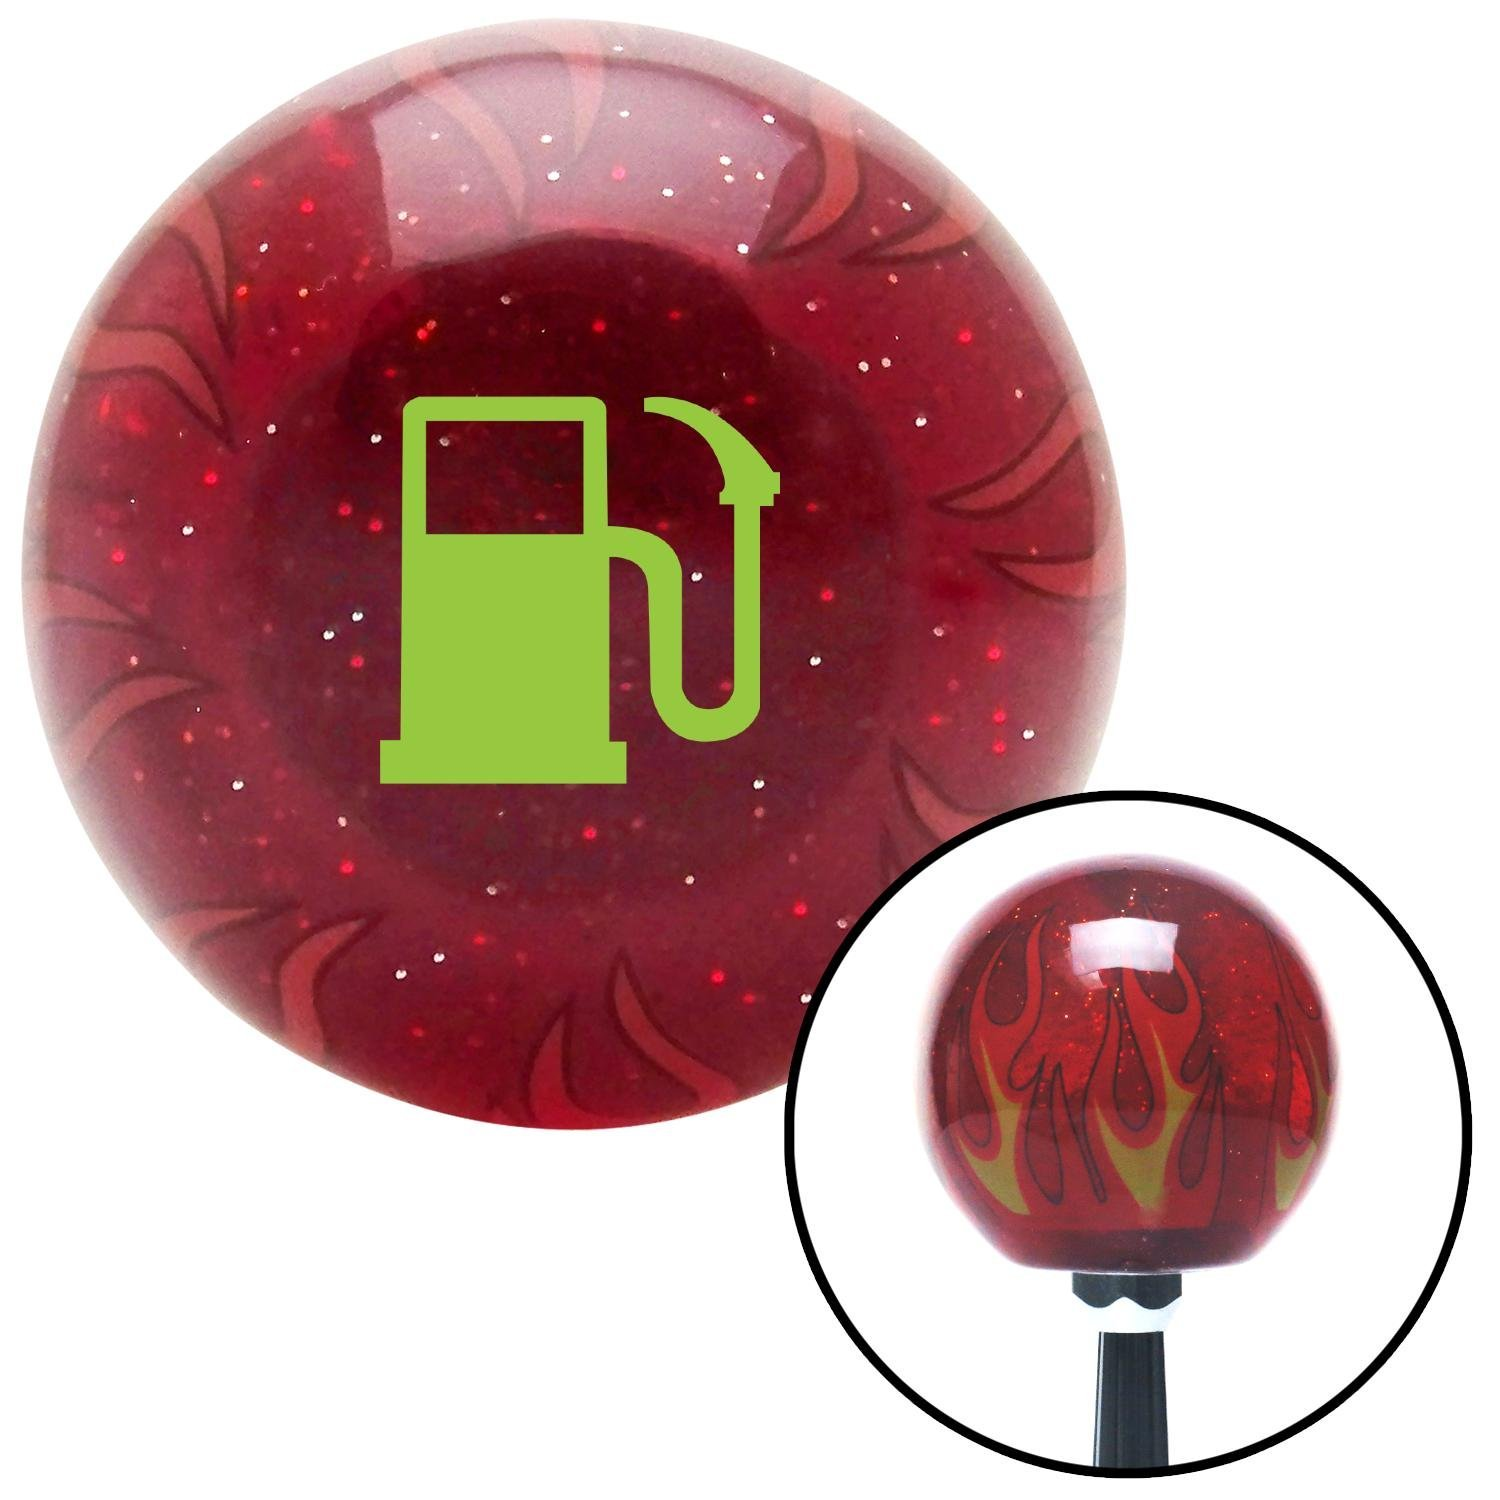 American Shifter 235995 Red Flame Metal Flake Shift Knob with M16 x 1.5 Insert Green Gas Station Tank